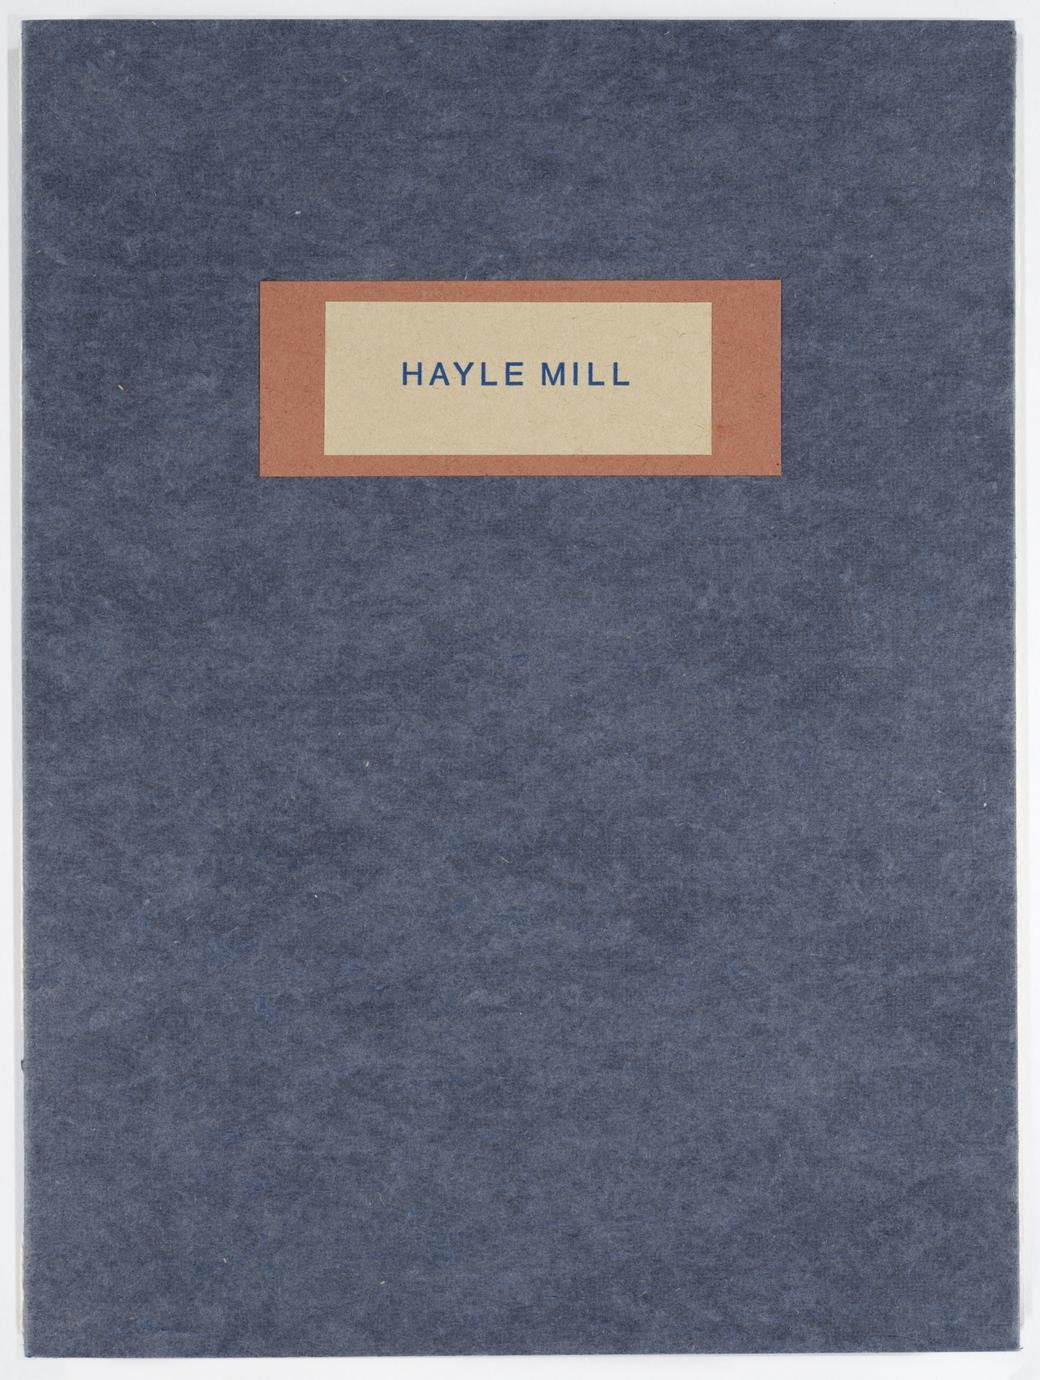 Papermaking at Hayle Mill, 1808-1987 (1 of 5)